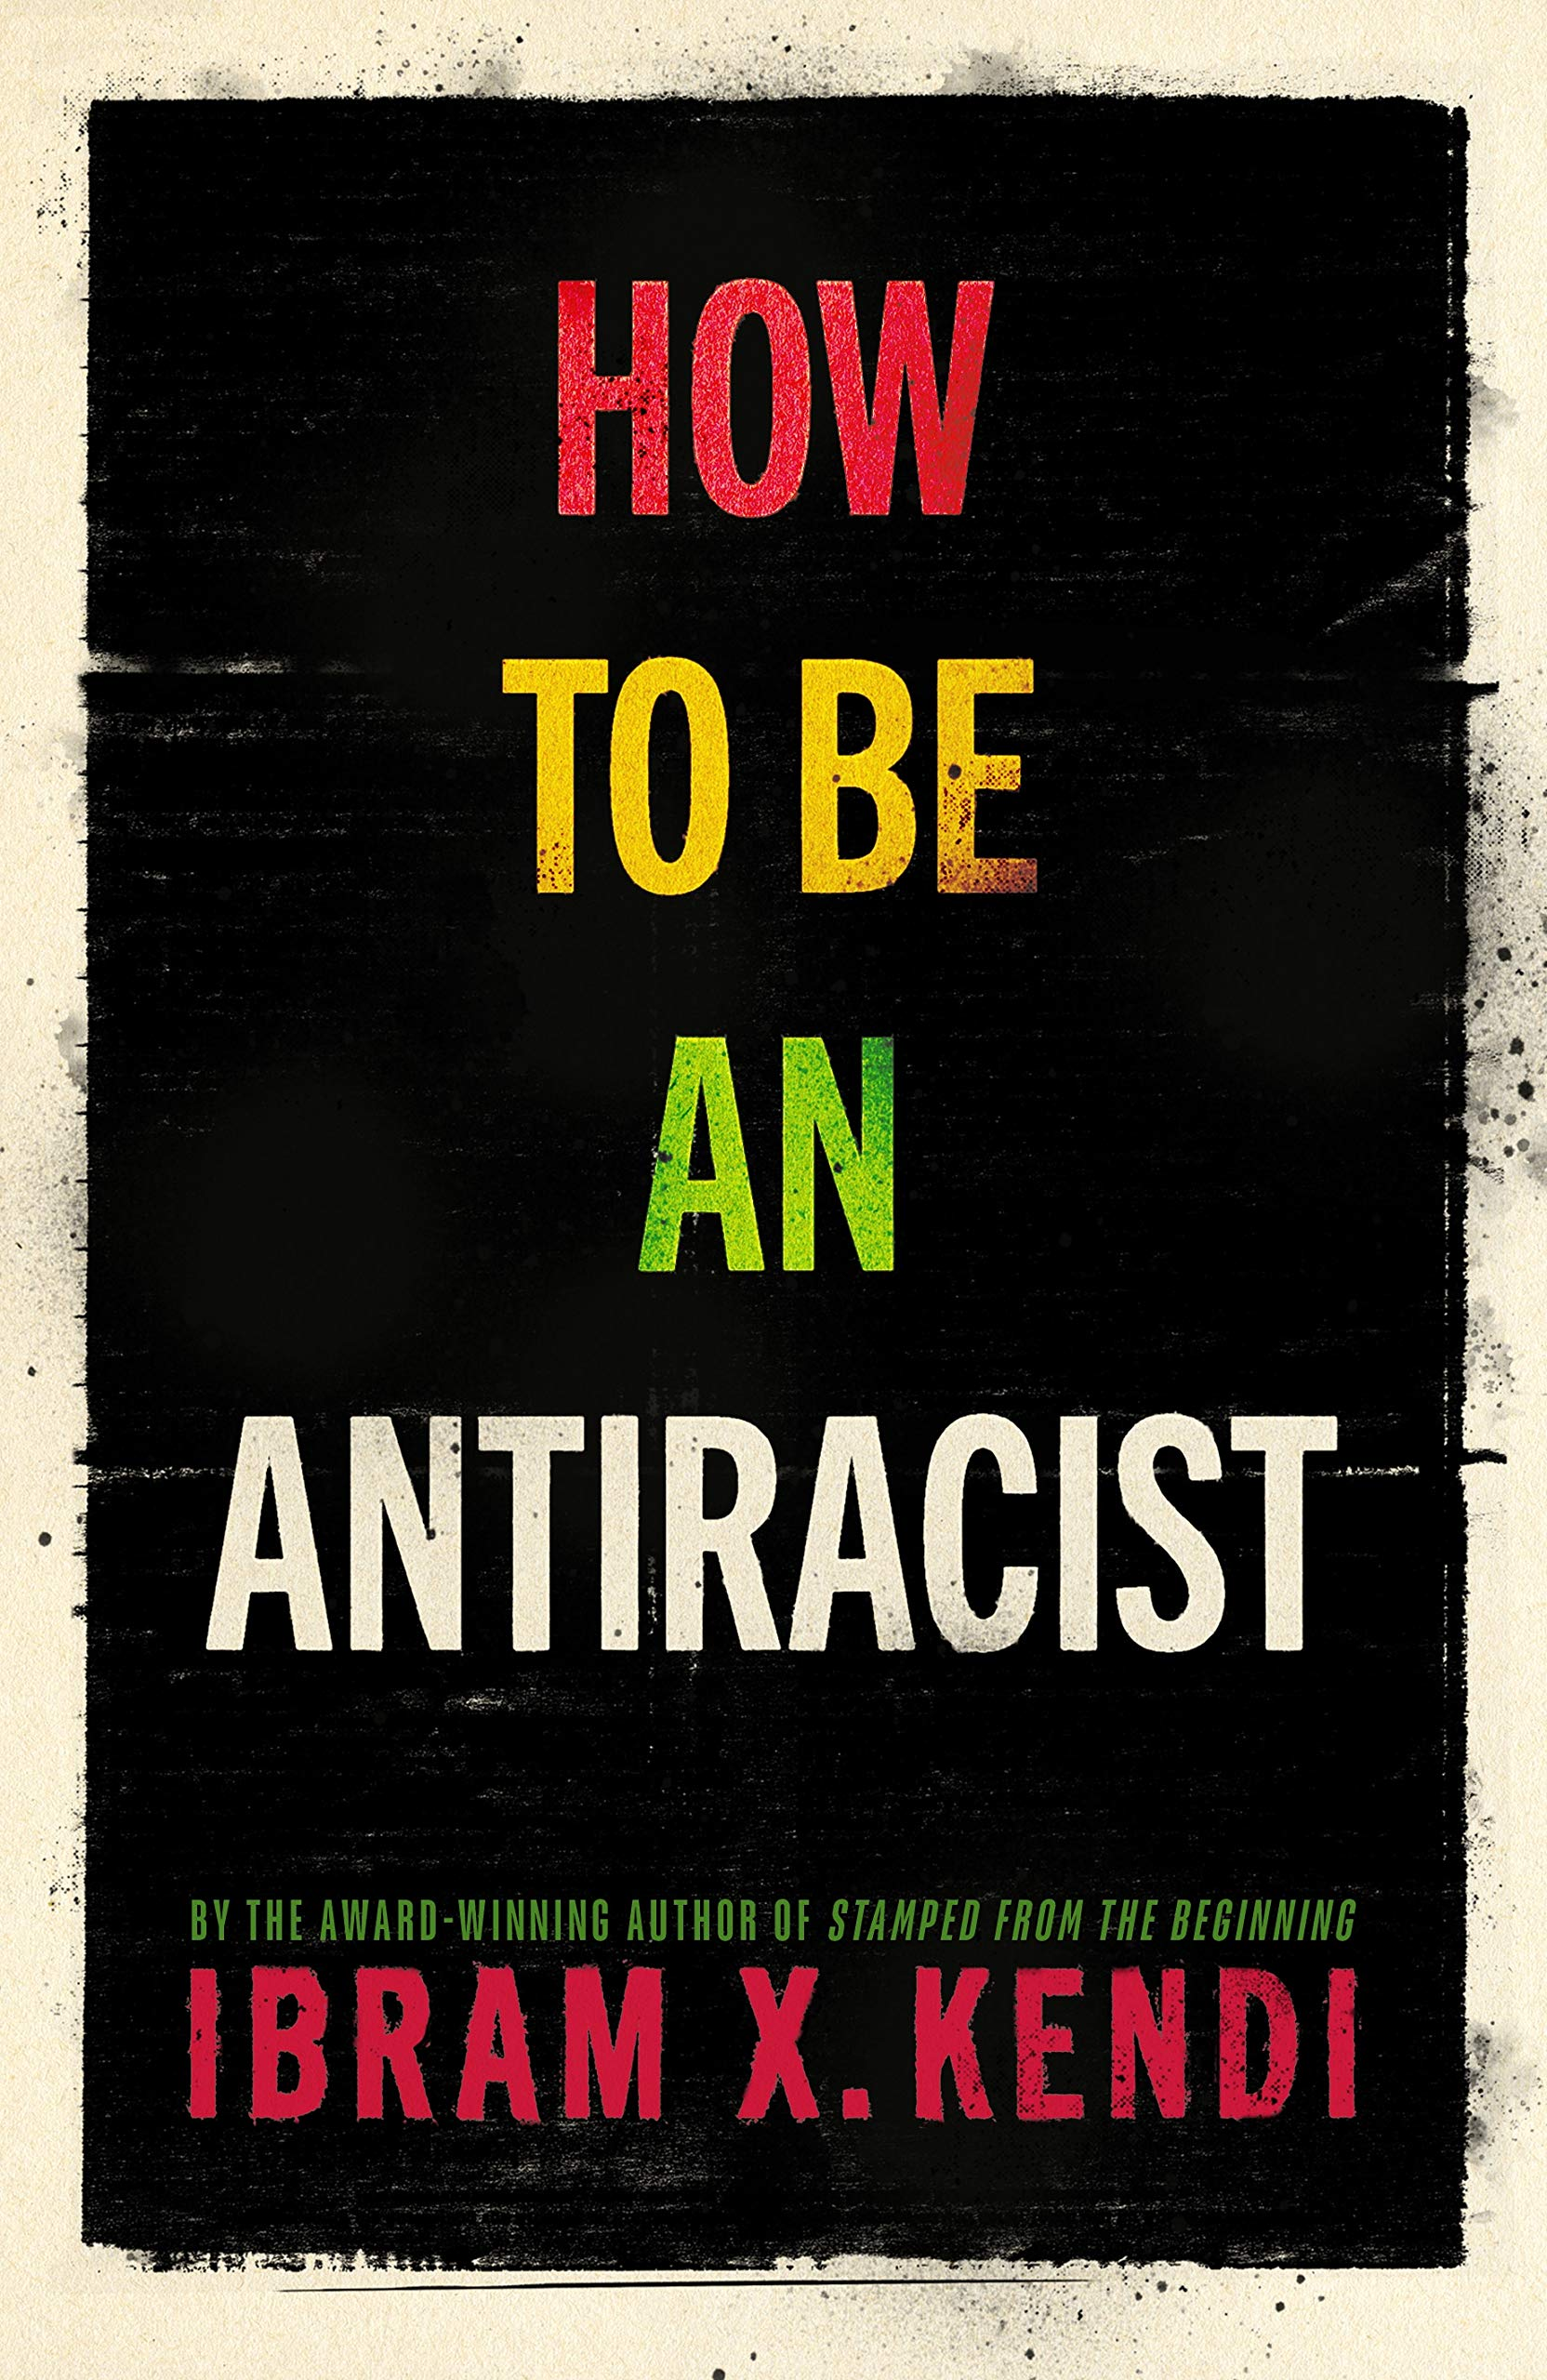 Amazon.com: How To Be an Antiracist (9781847925992): Ibram X ...